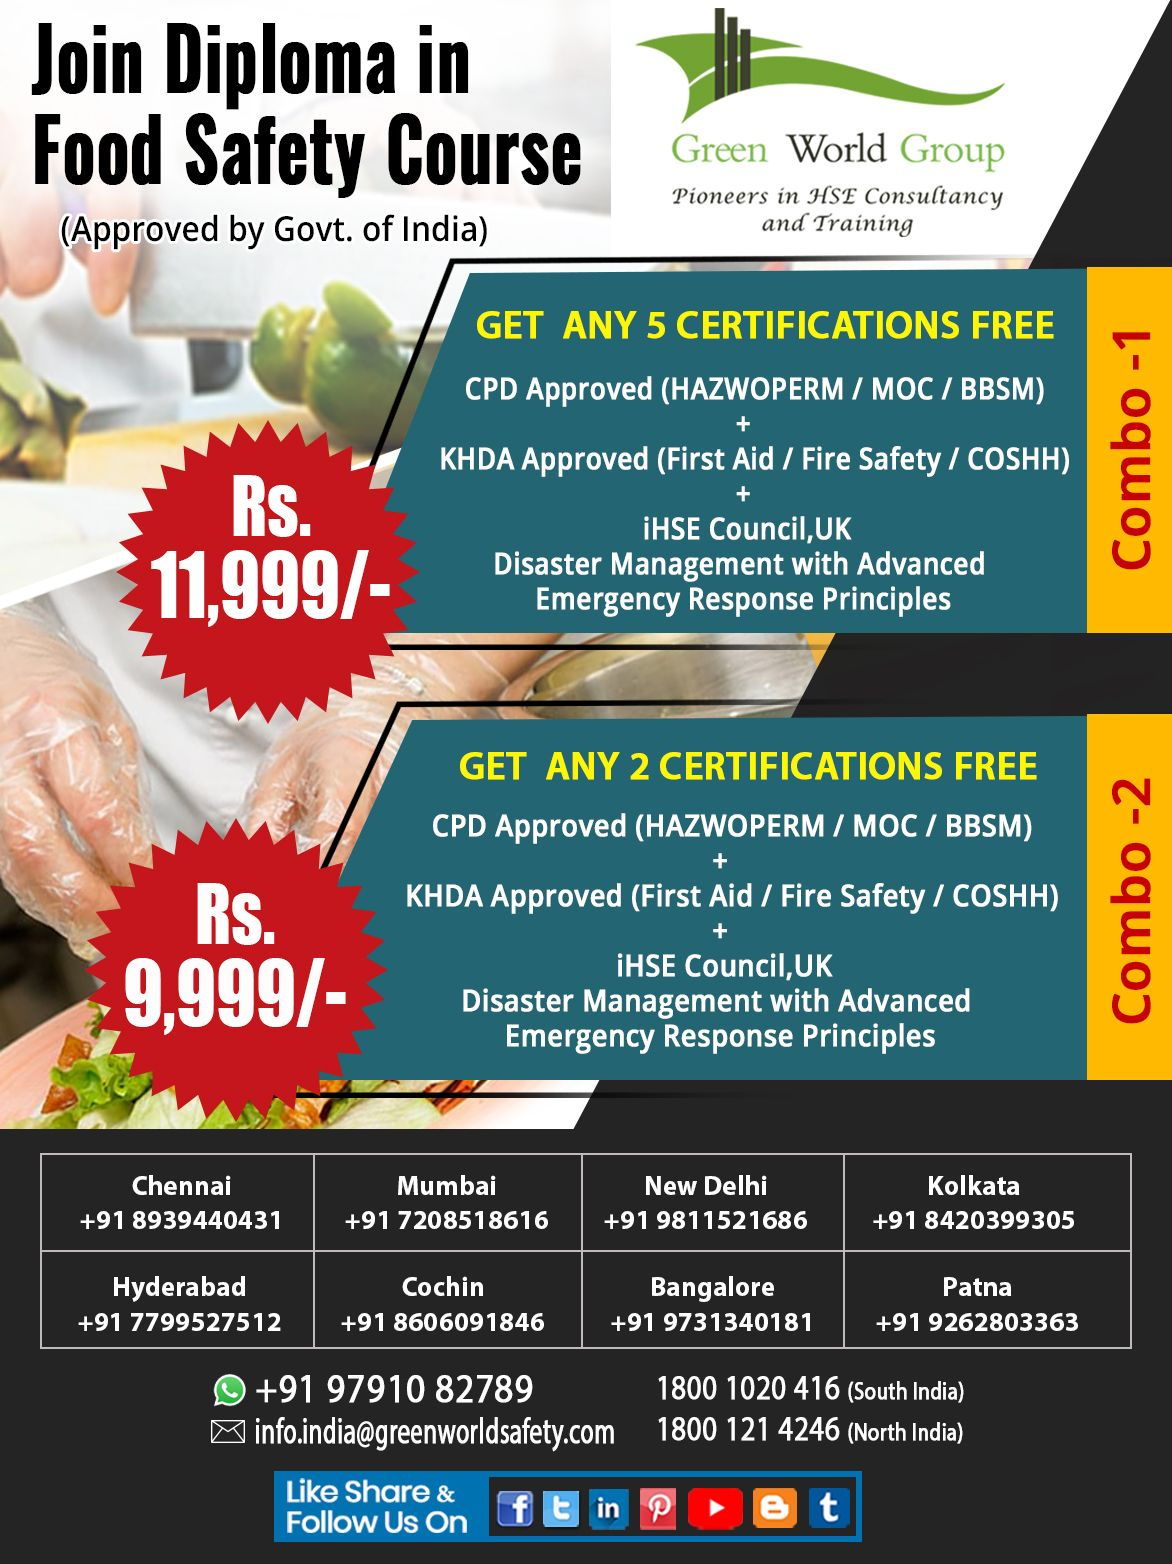 Join the Diploma in Food Safety Training Course which is